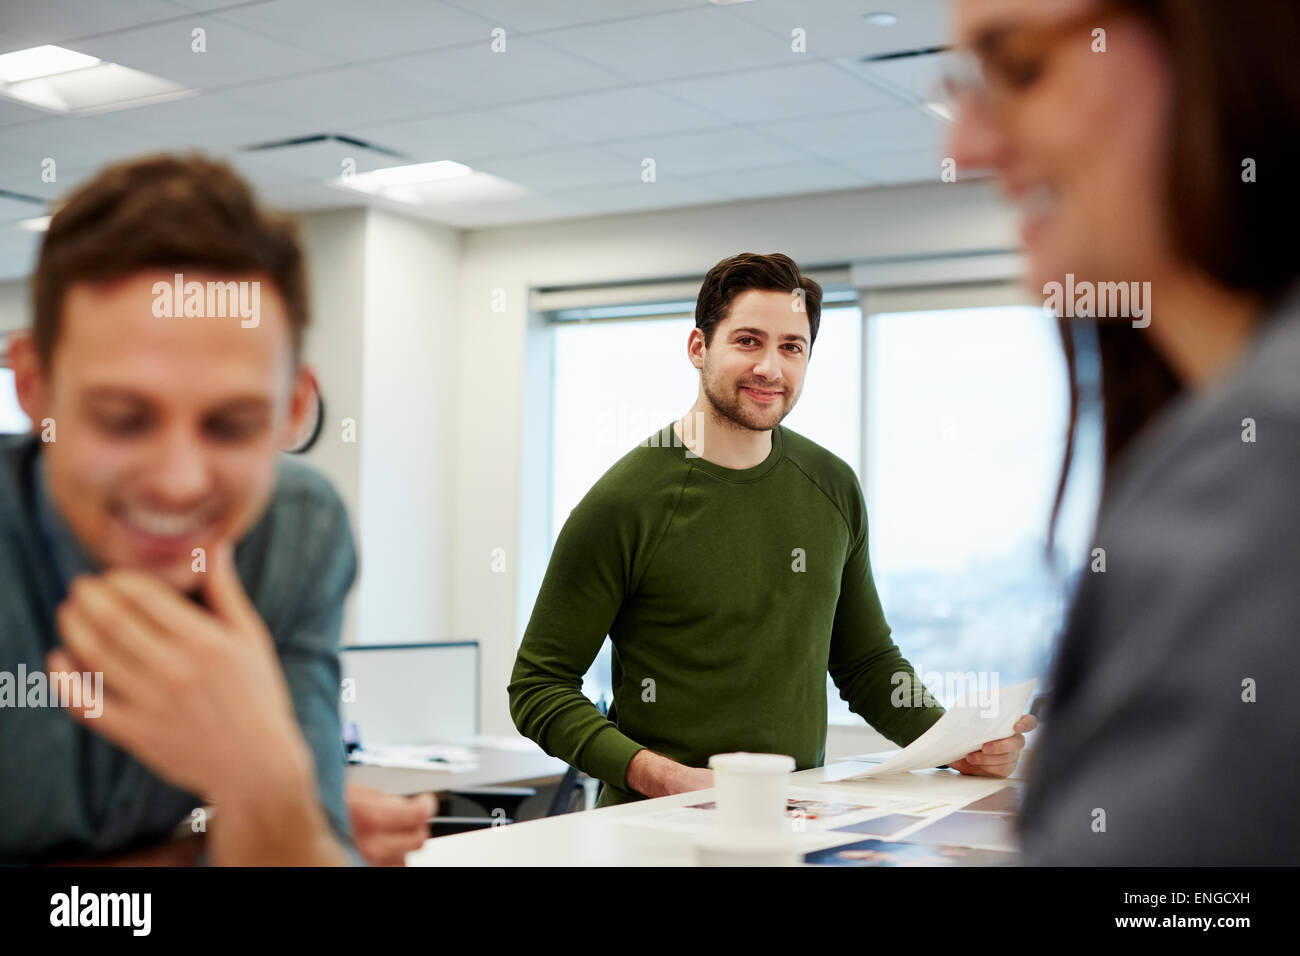 Three people in a large open plan office, two in the fore. - Stock Image